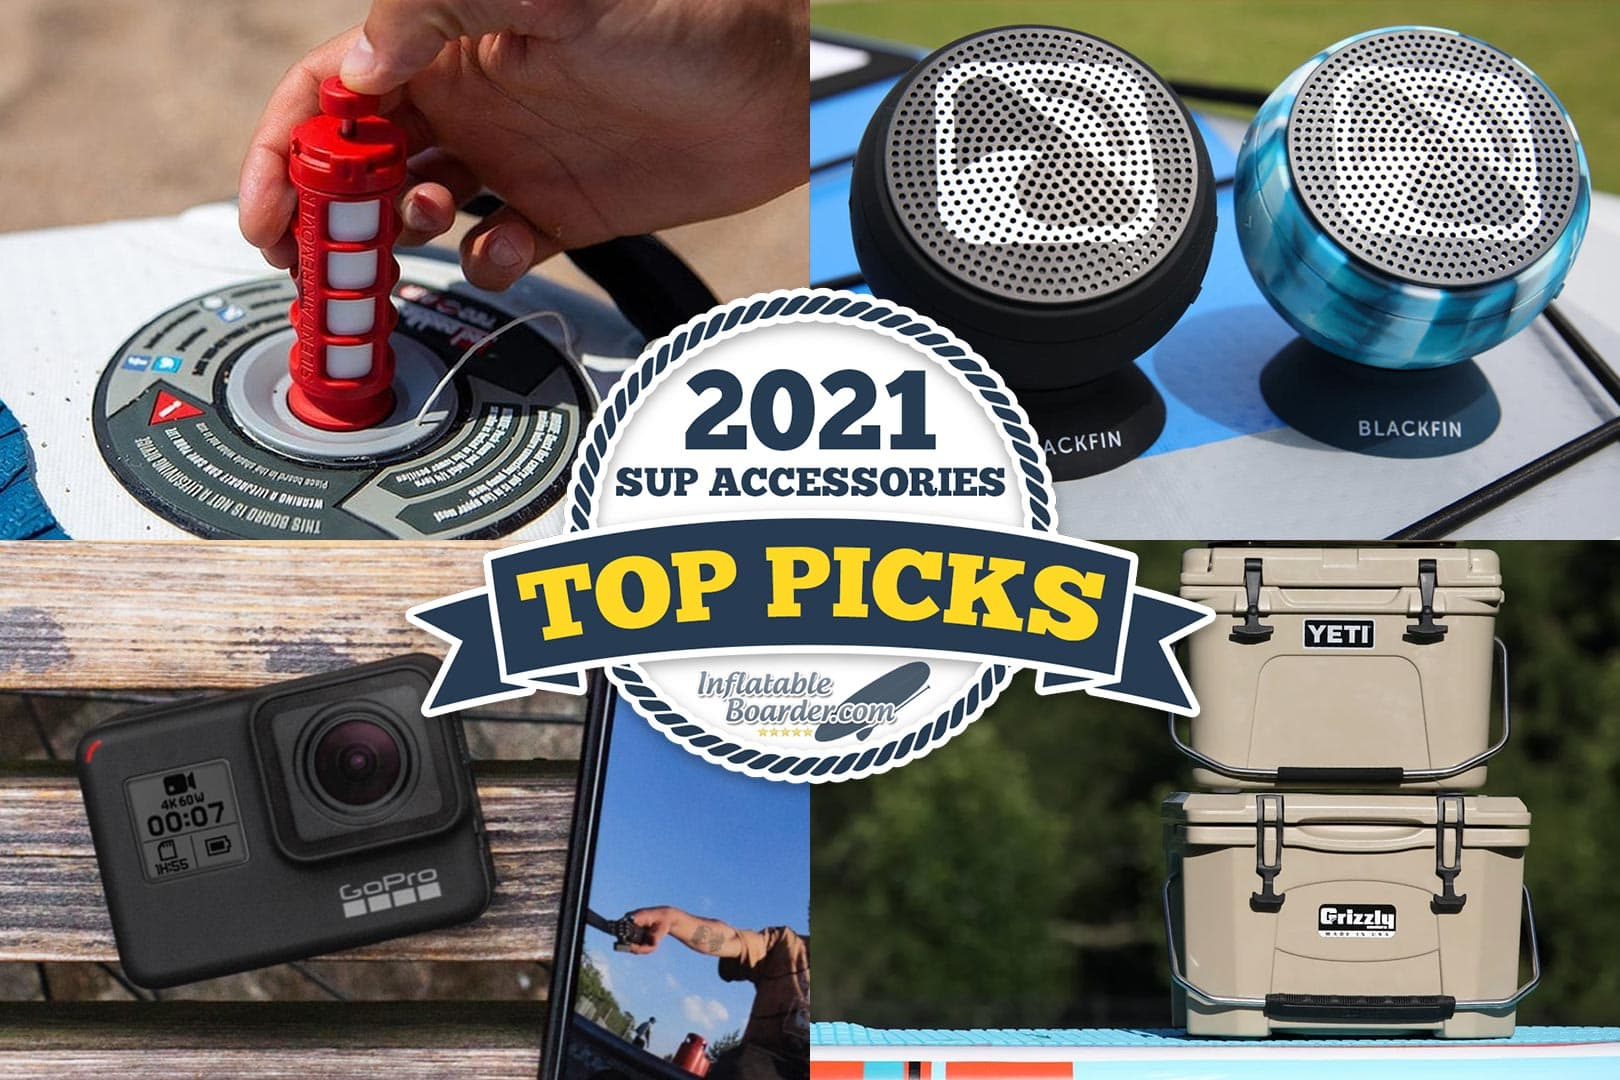 Top Picks for Best SUP Accessories Compared